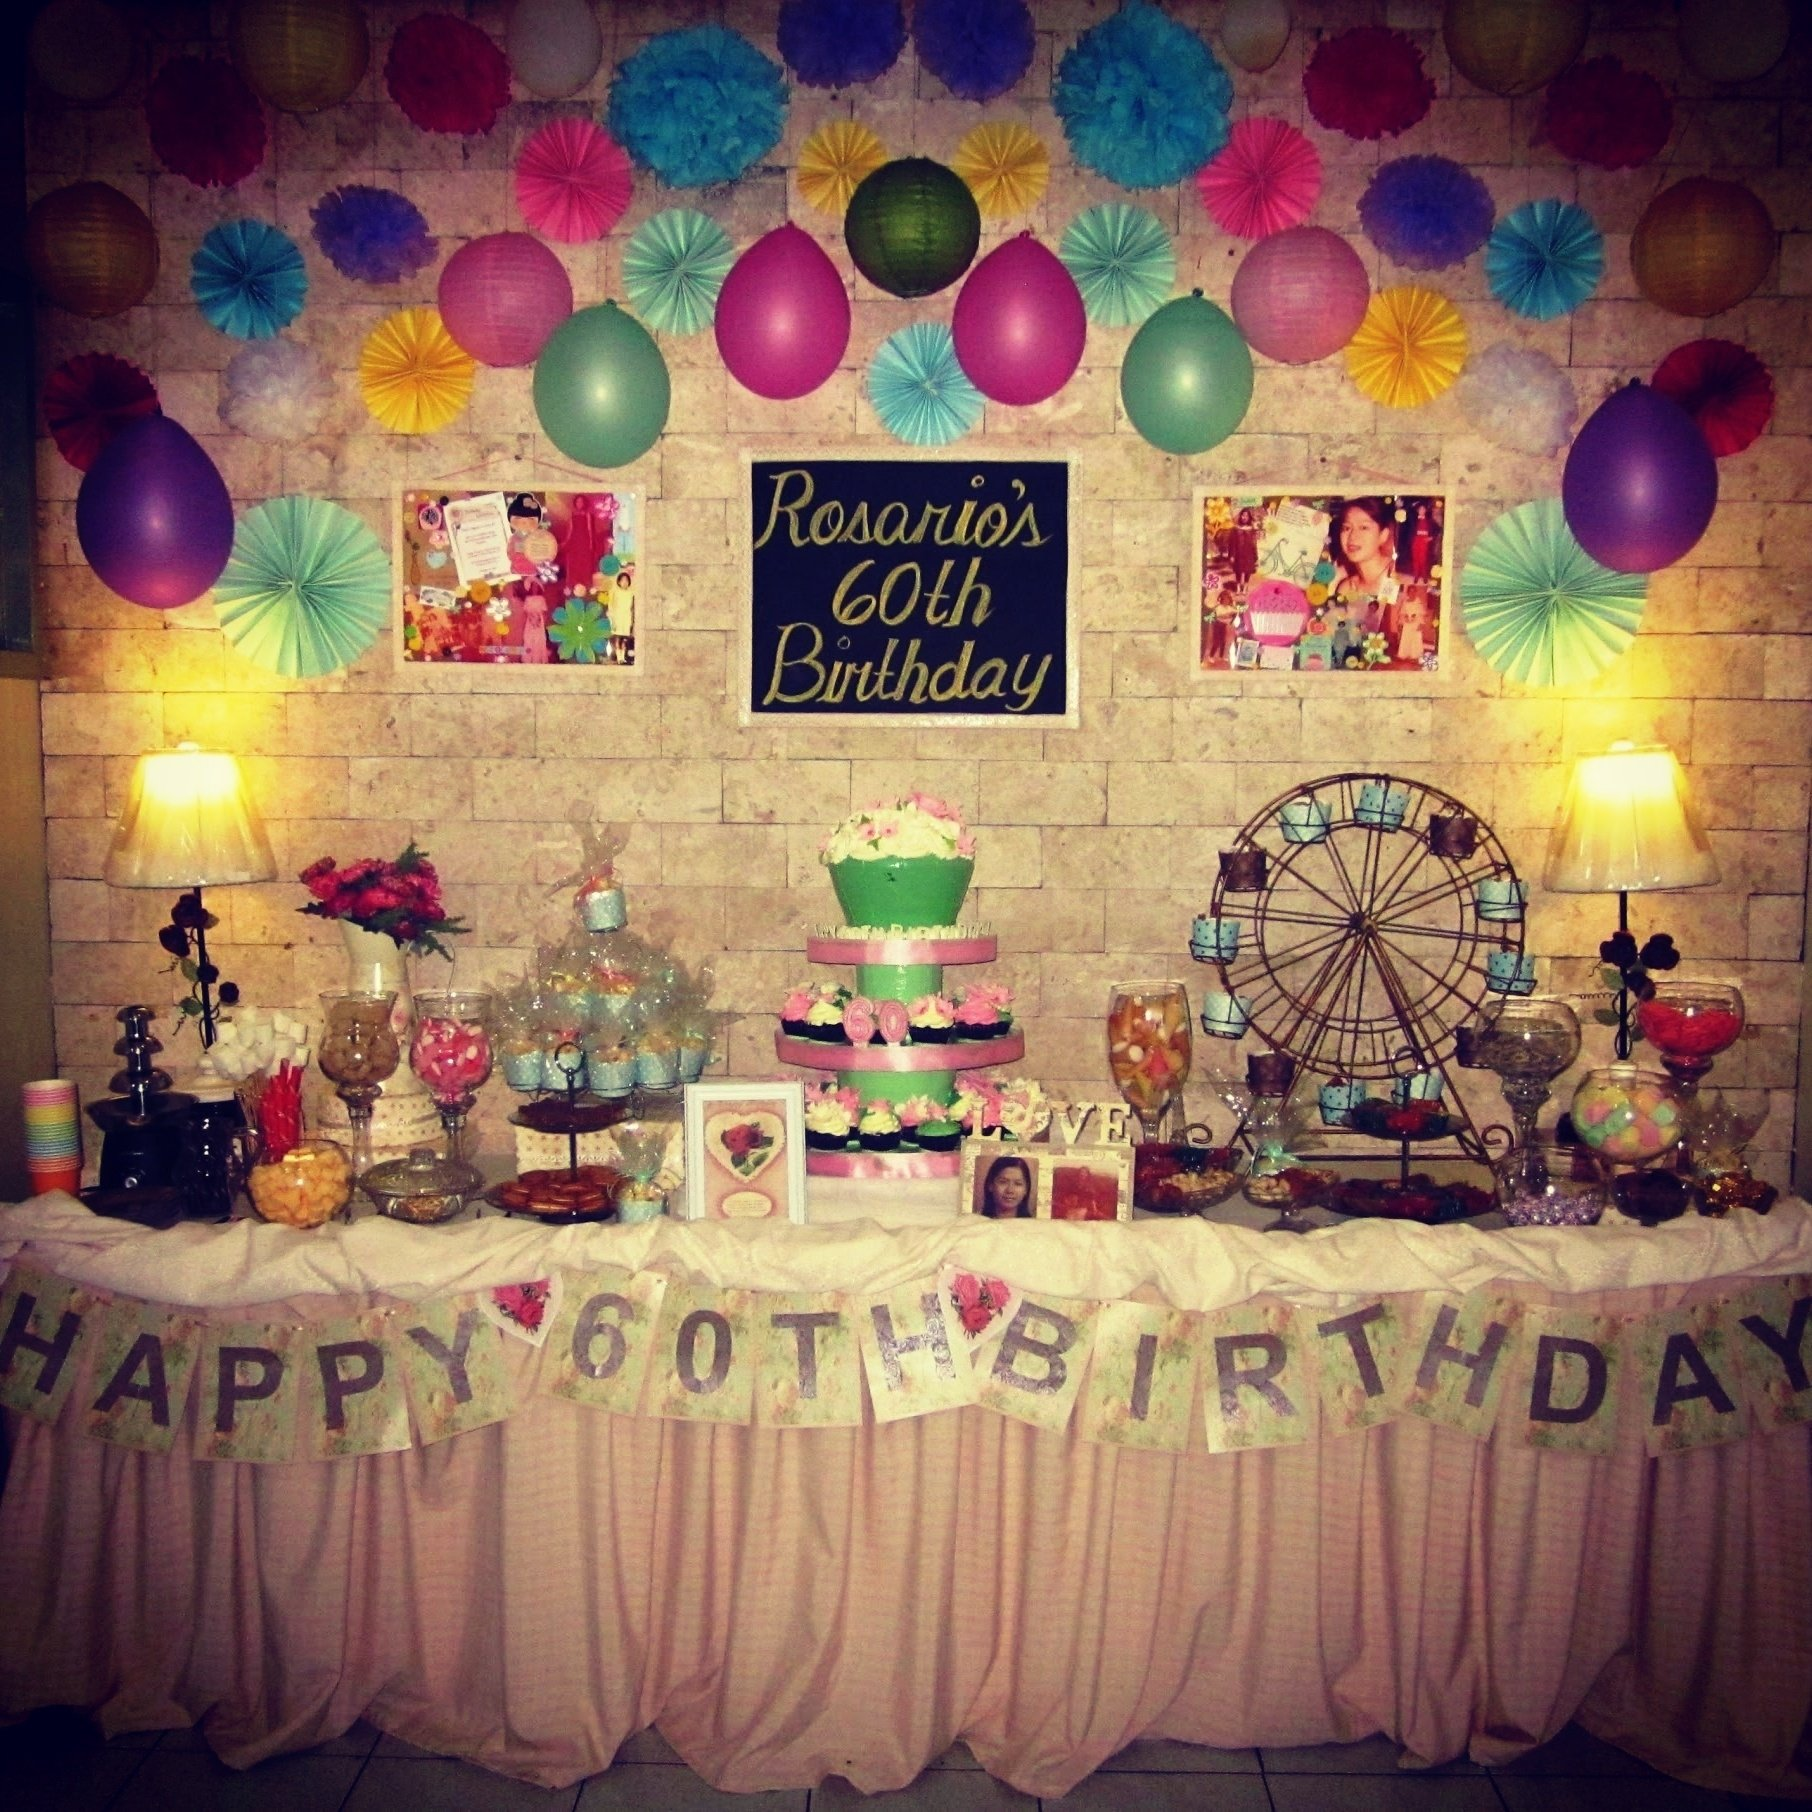 10 Wonderful Ideas For A 60Th Birthday valuable 60th birthday party games ideas 60th for mom plus mum gift 2020